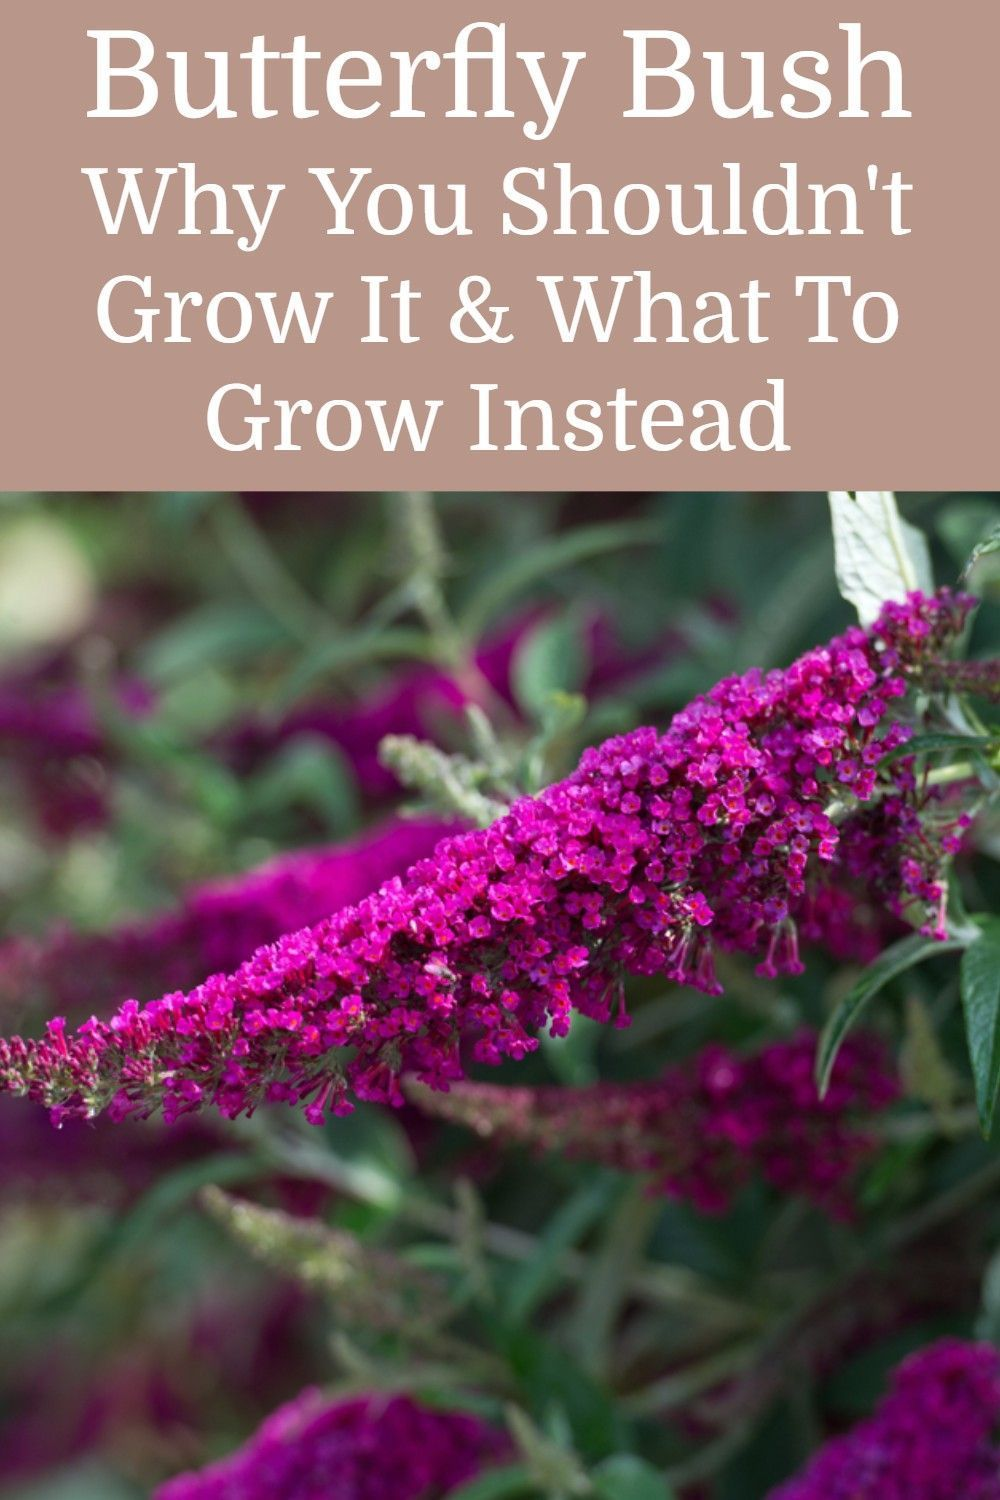 Butterfly Bush Why You Shouldn T Grow It What To Grow Instead In 2020 Butterfly Bush Grow Butterflies Flowers Perennials